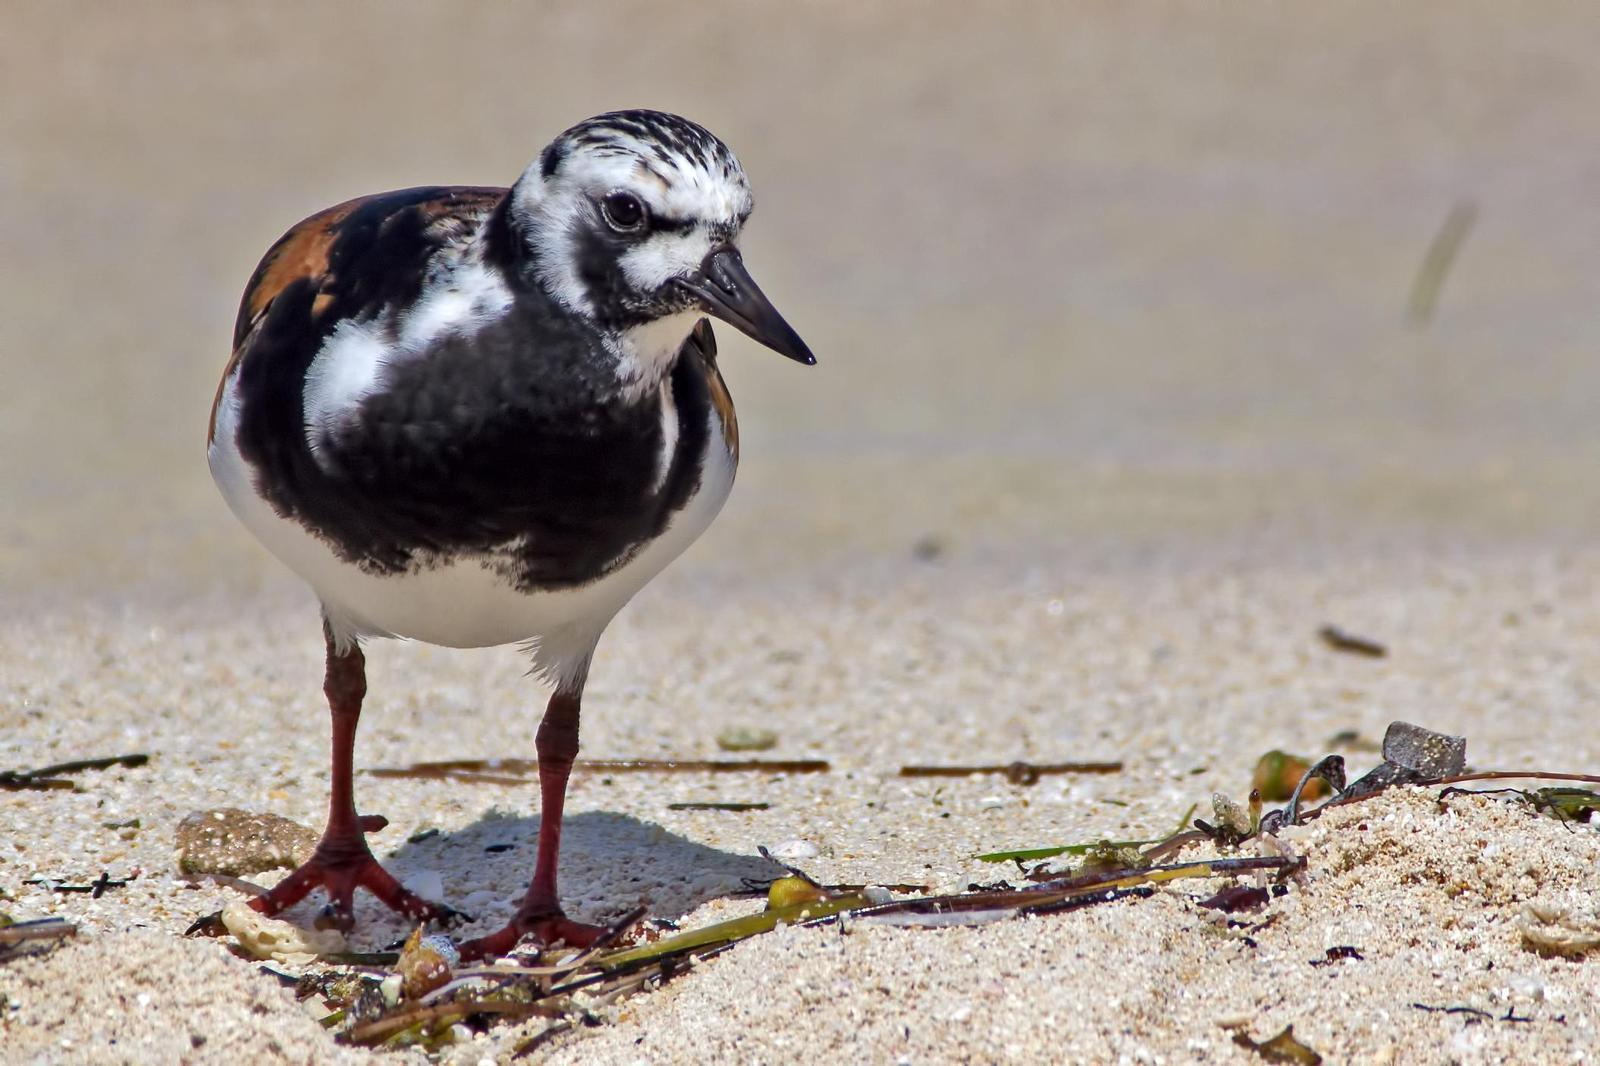 Ruddy Turnstone Photo by Rob Dickerson